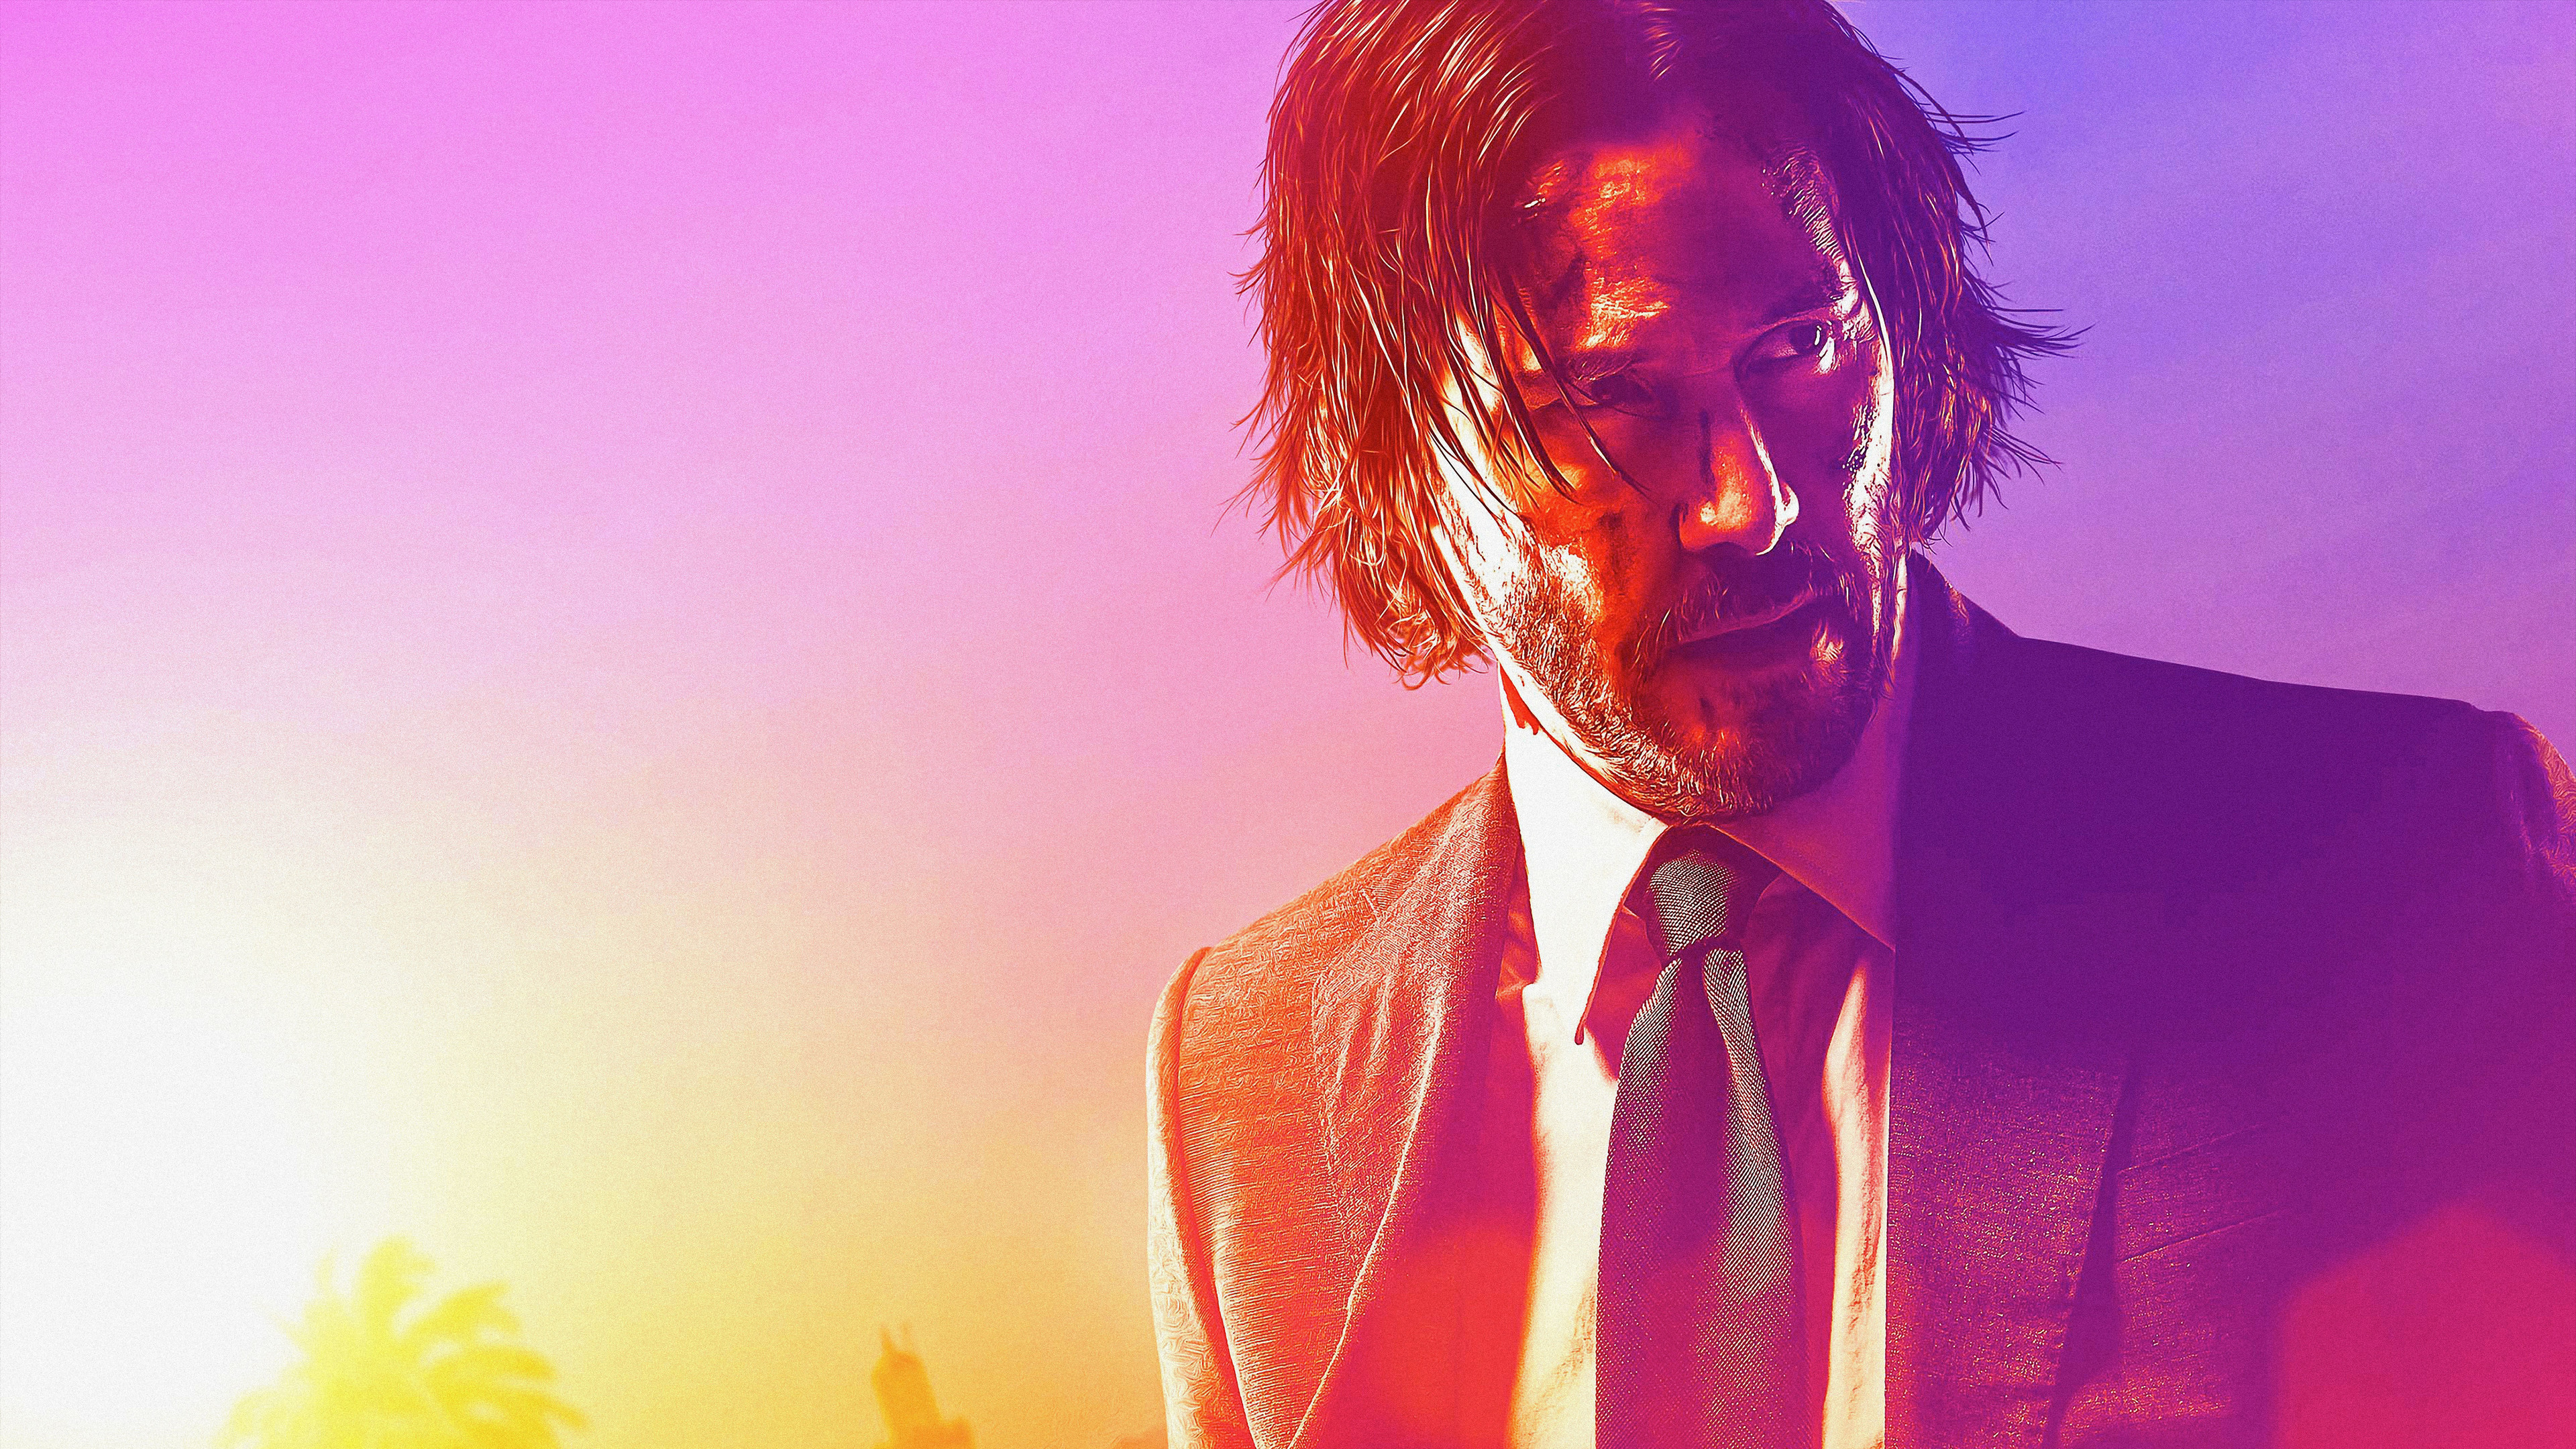 john wick chapter 3 parabellum 4k 1555208706 - John Wick Chapter 3 Parabellum 4k - movies wallpapers, john wick chapter 3 wallpapers, john wick 3 wallpapers, john wick 3 parabellum wallpapers, hd-wallpapers, 8k wallpapers, 5k wallpapers, 4k-wallpapers, 2019 movies wallpapers